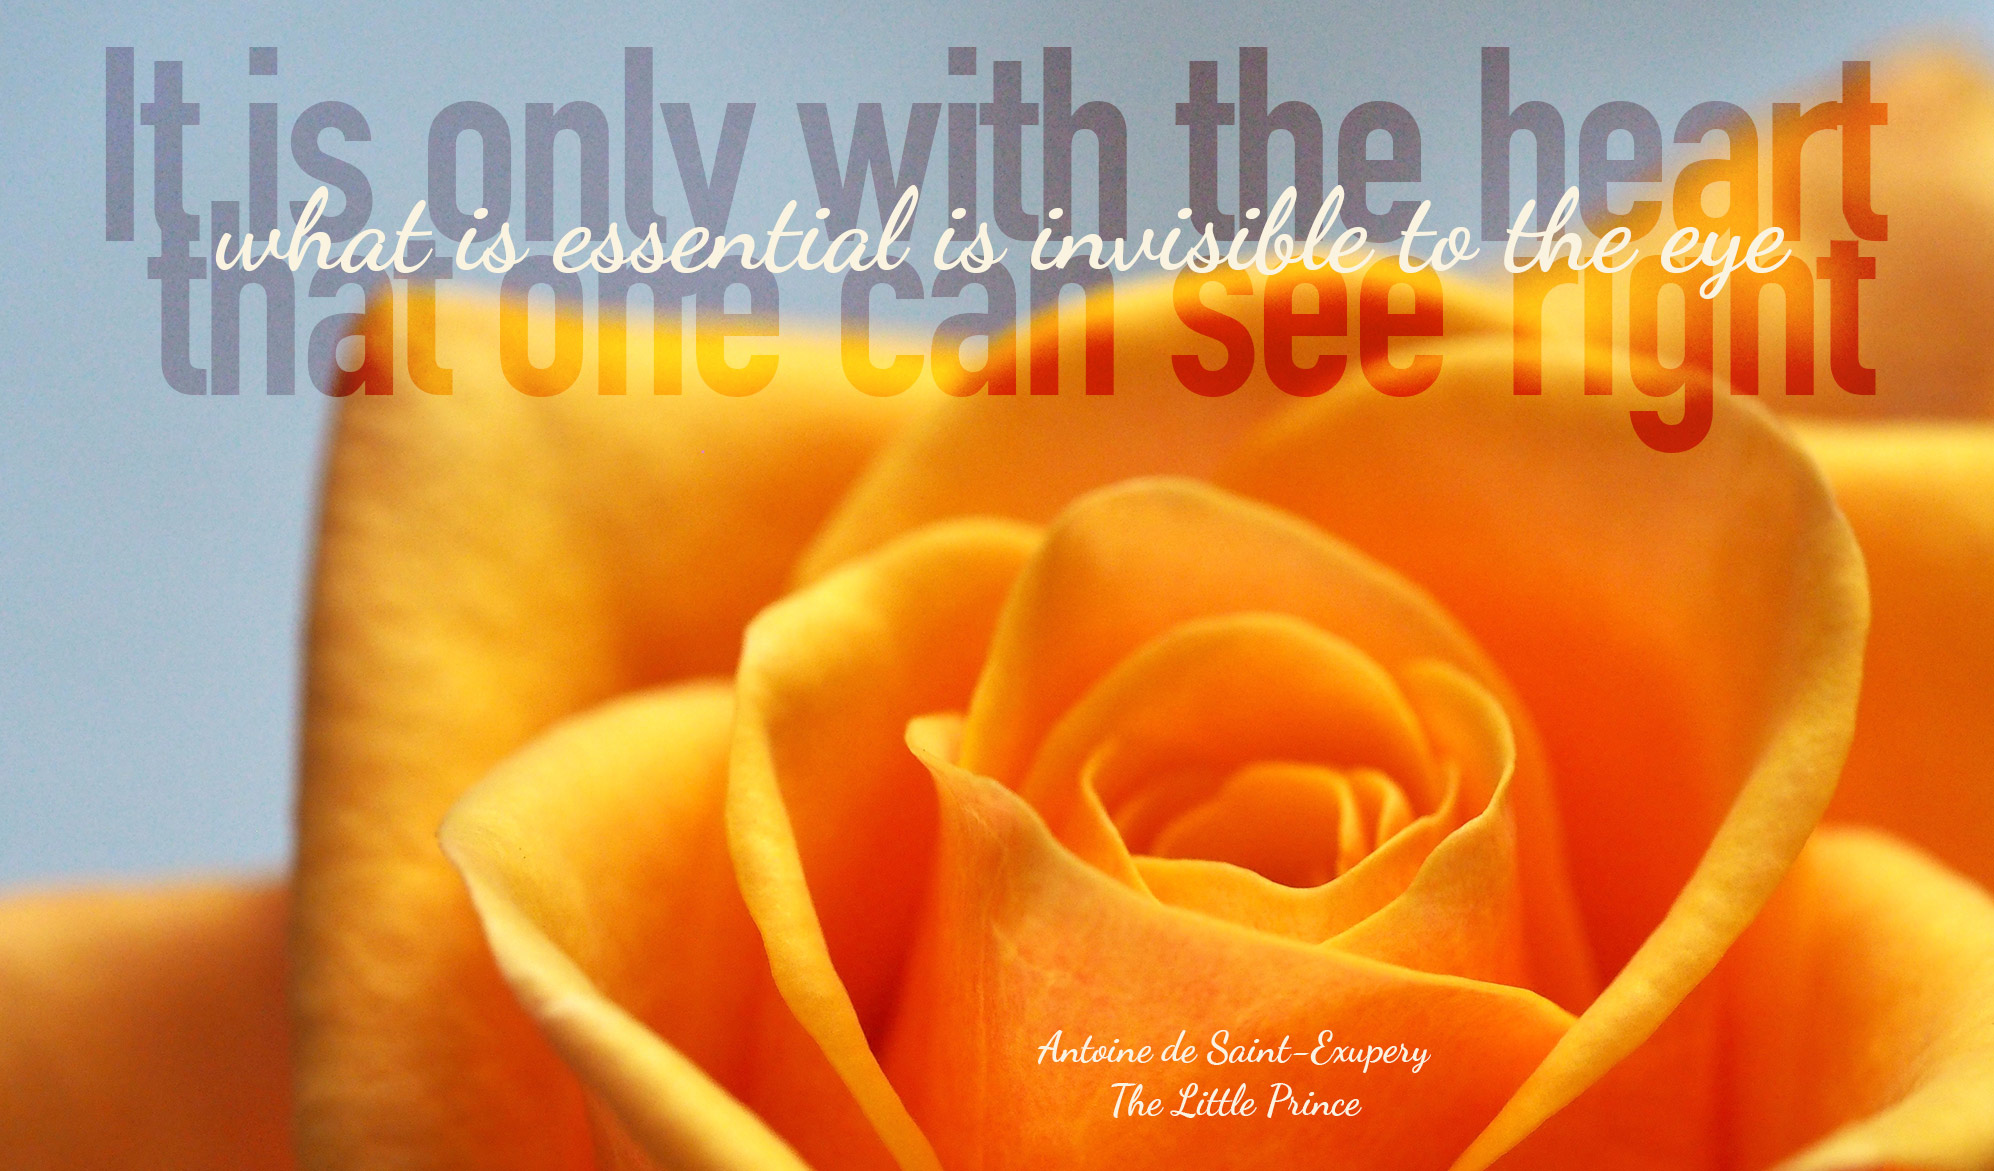 daily inpirational quote image: close up of an orange rose in full bloom